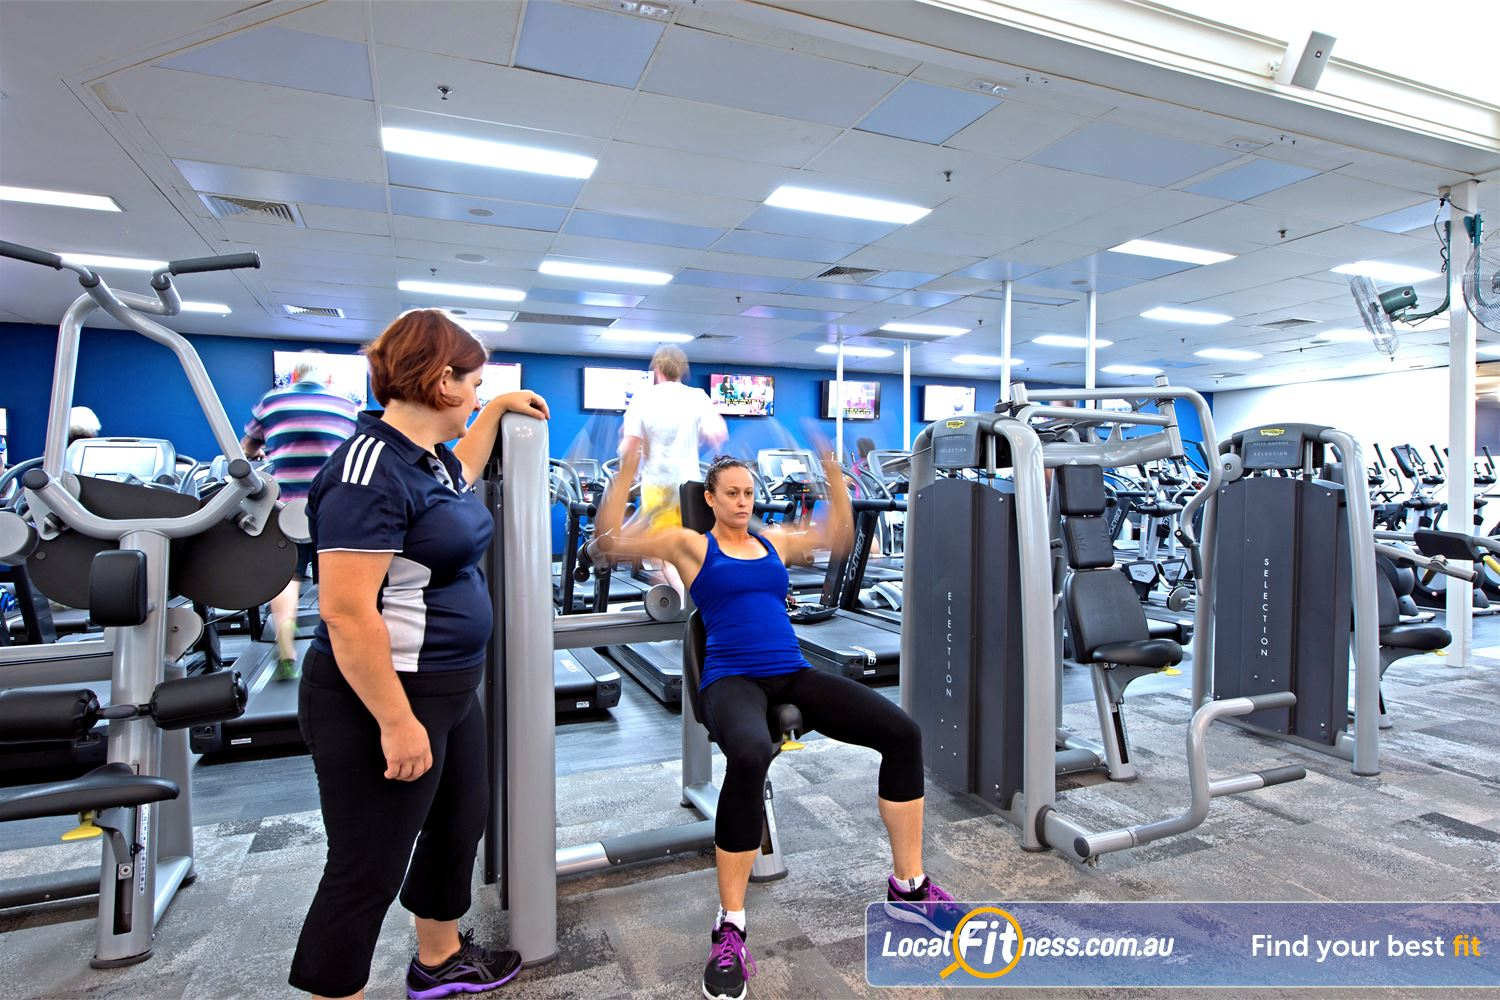 Goodlife Health Clubs Cottesloe Our team of Cottesloe gym instructors can help monitor your strength training.